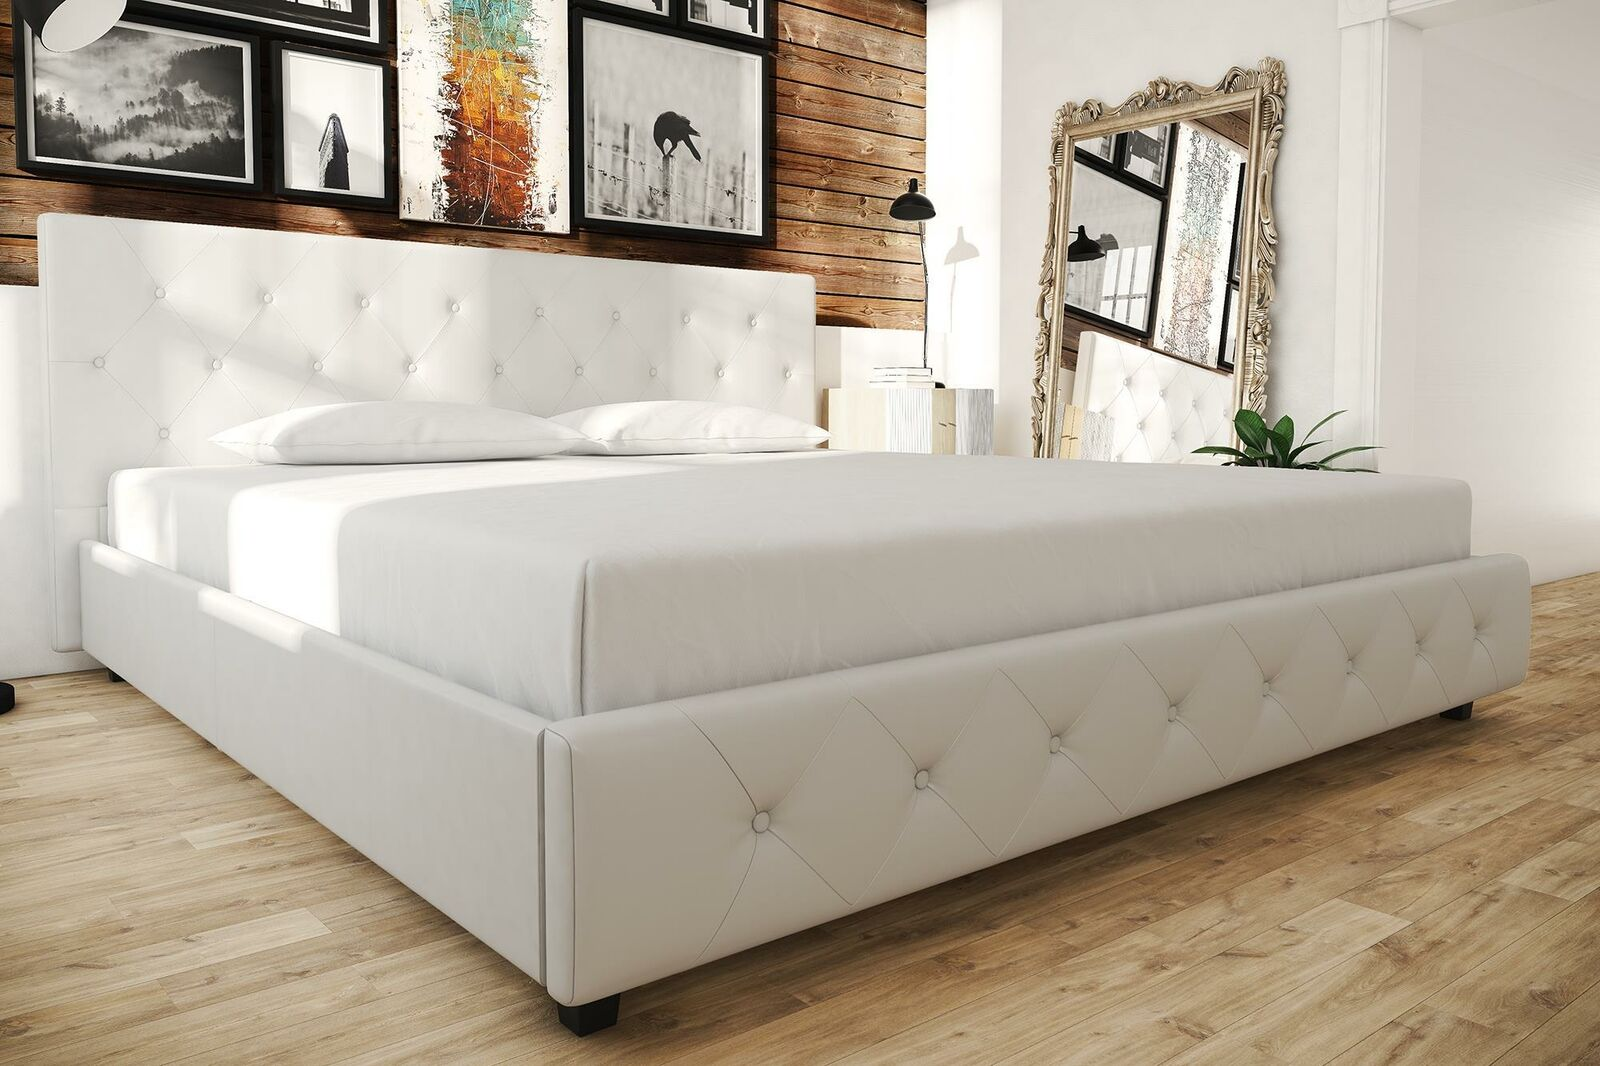 Picture of: Maitland Smith Campaign Leather Rattan Bamboo King Size Platform Bed Exc Cond For Sale Online Ebay